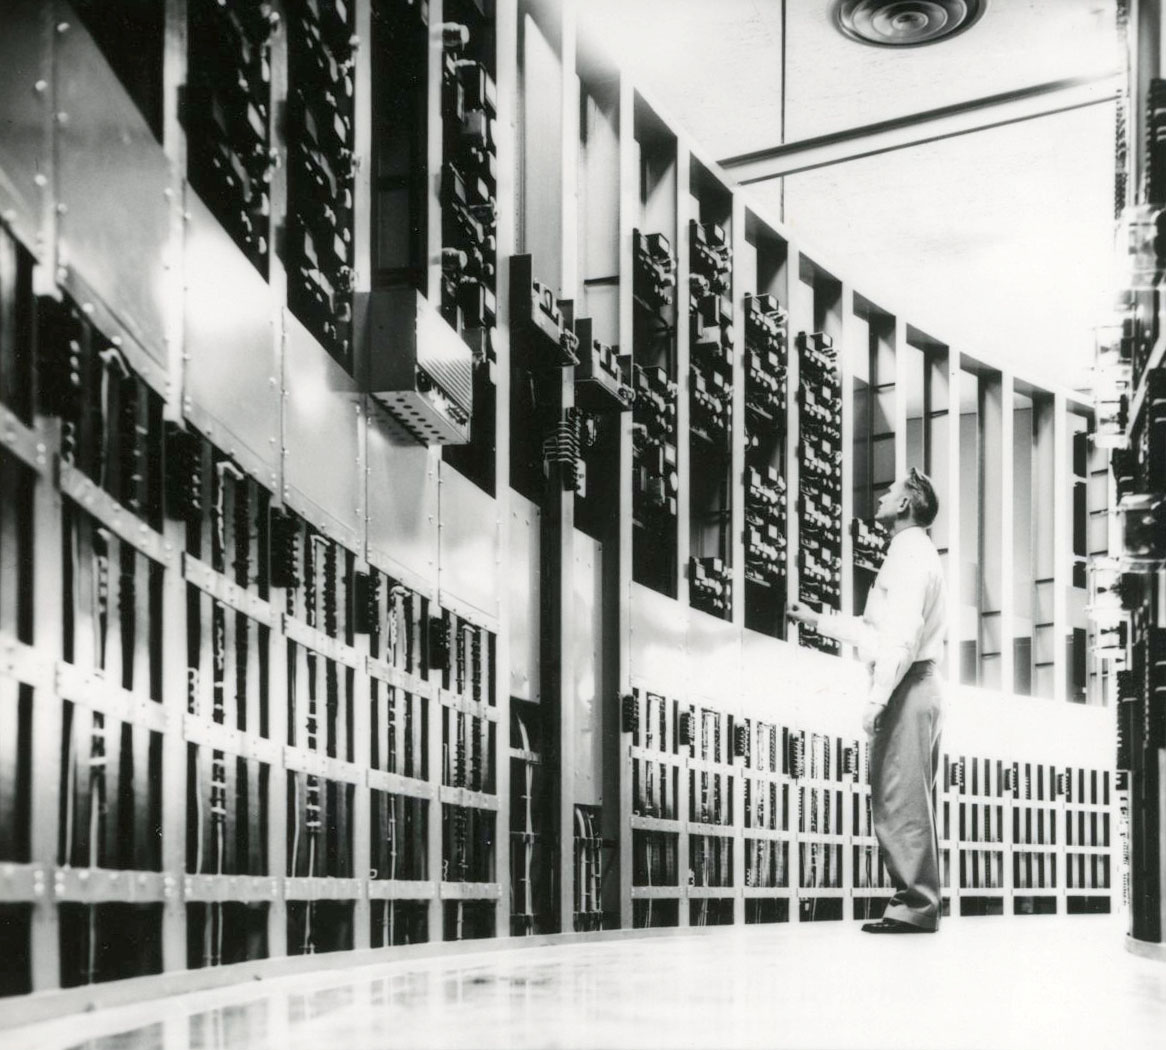 Dispatcher at BPA nerve center inspects bank of electrical relays, 1955